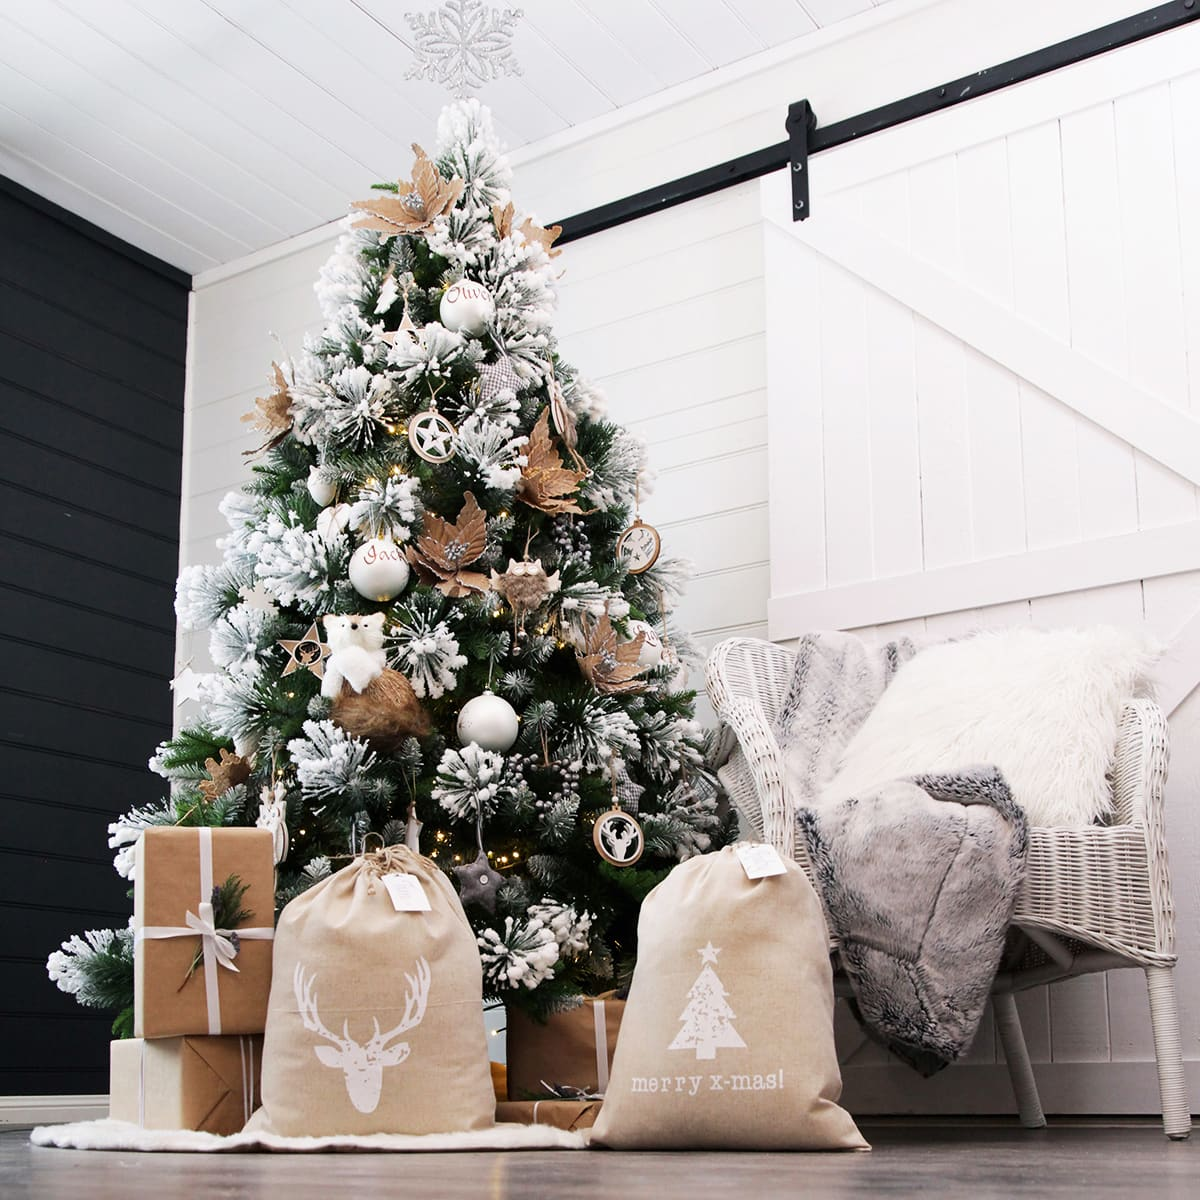 scandi christmas decorations scandinavian christmas treet with white snow tips and brown paper presents